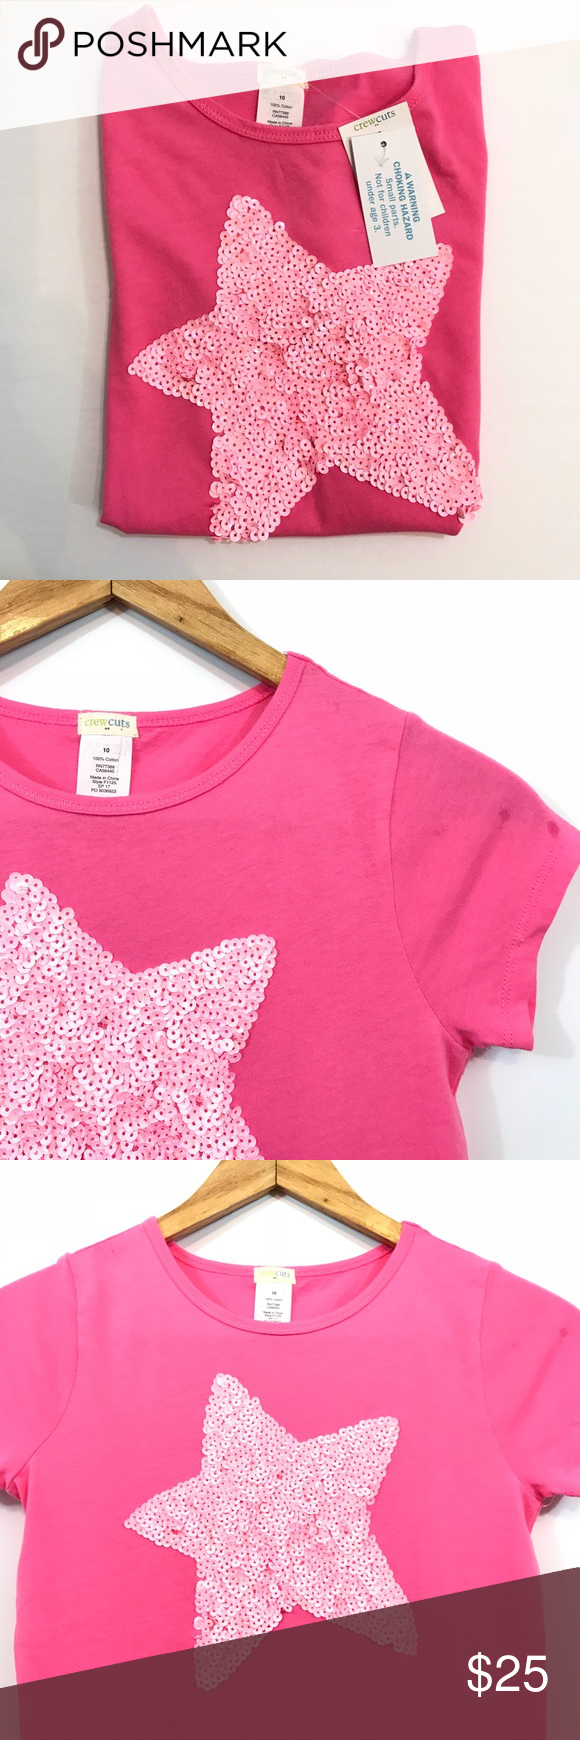 NWT J. Crew Factory Tee NWT sequin star tee. So adorable! J. Crew Factory Shirts & Tops Tees - Short Sleeve